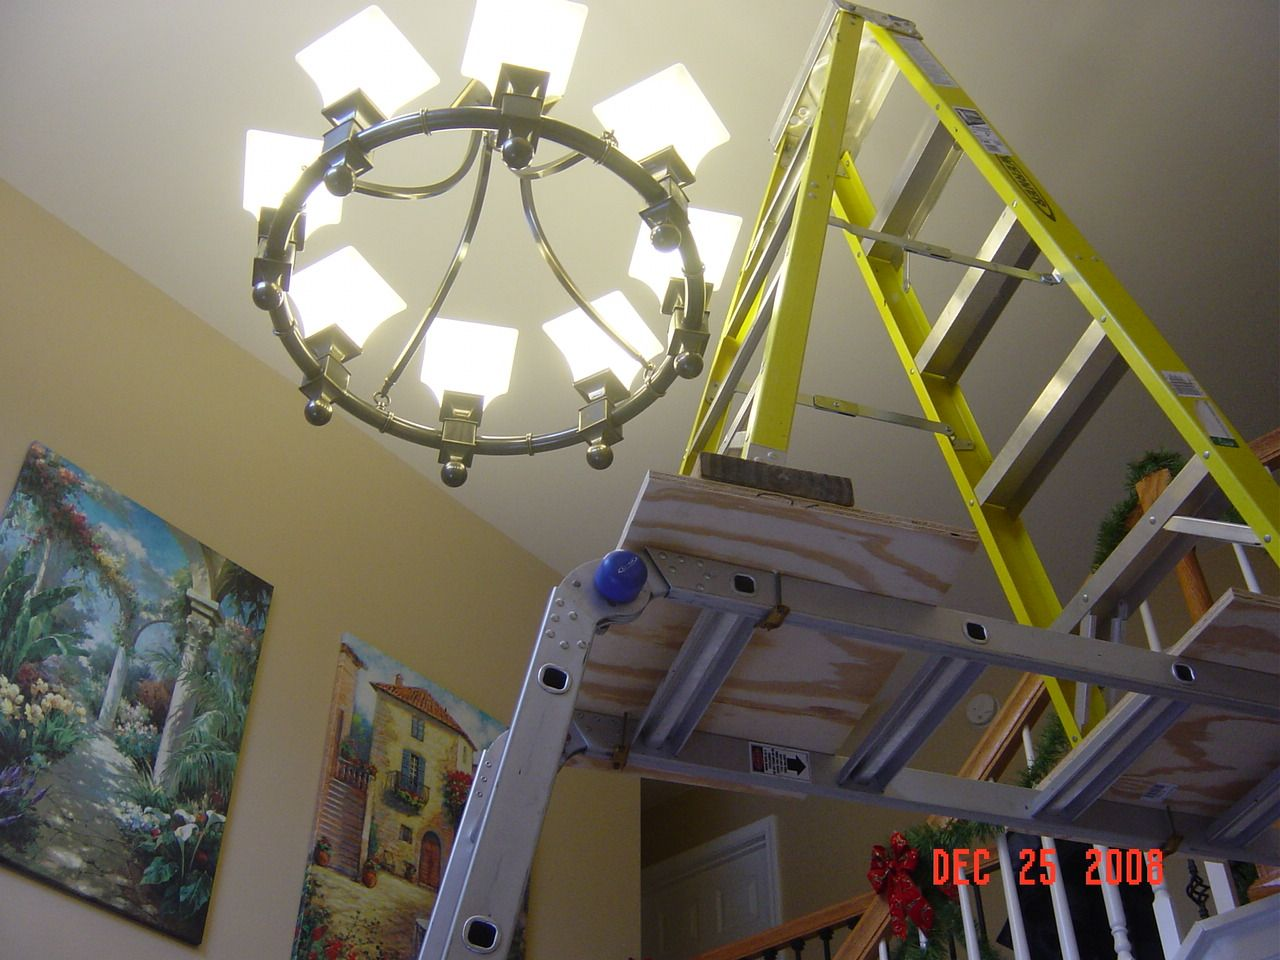 Replacing chandelier Entry is 2 stories talldsc01823